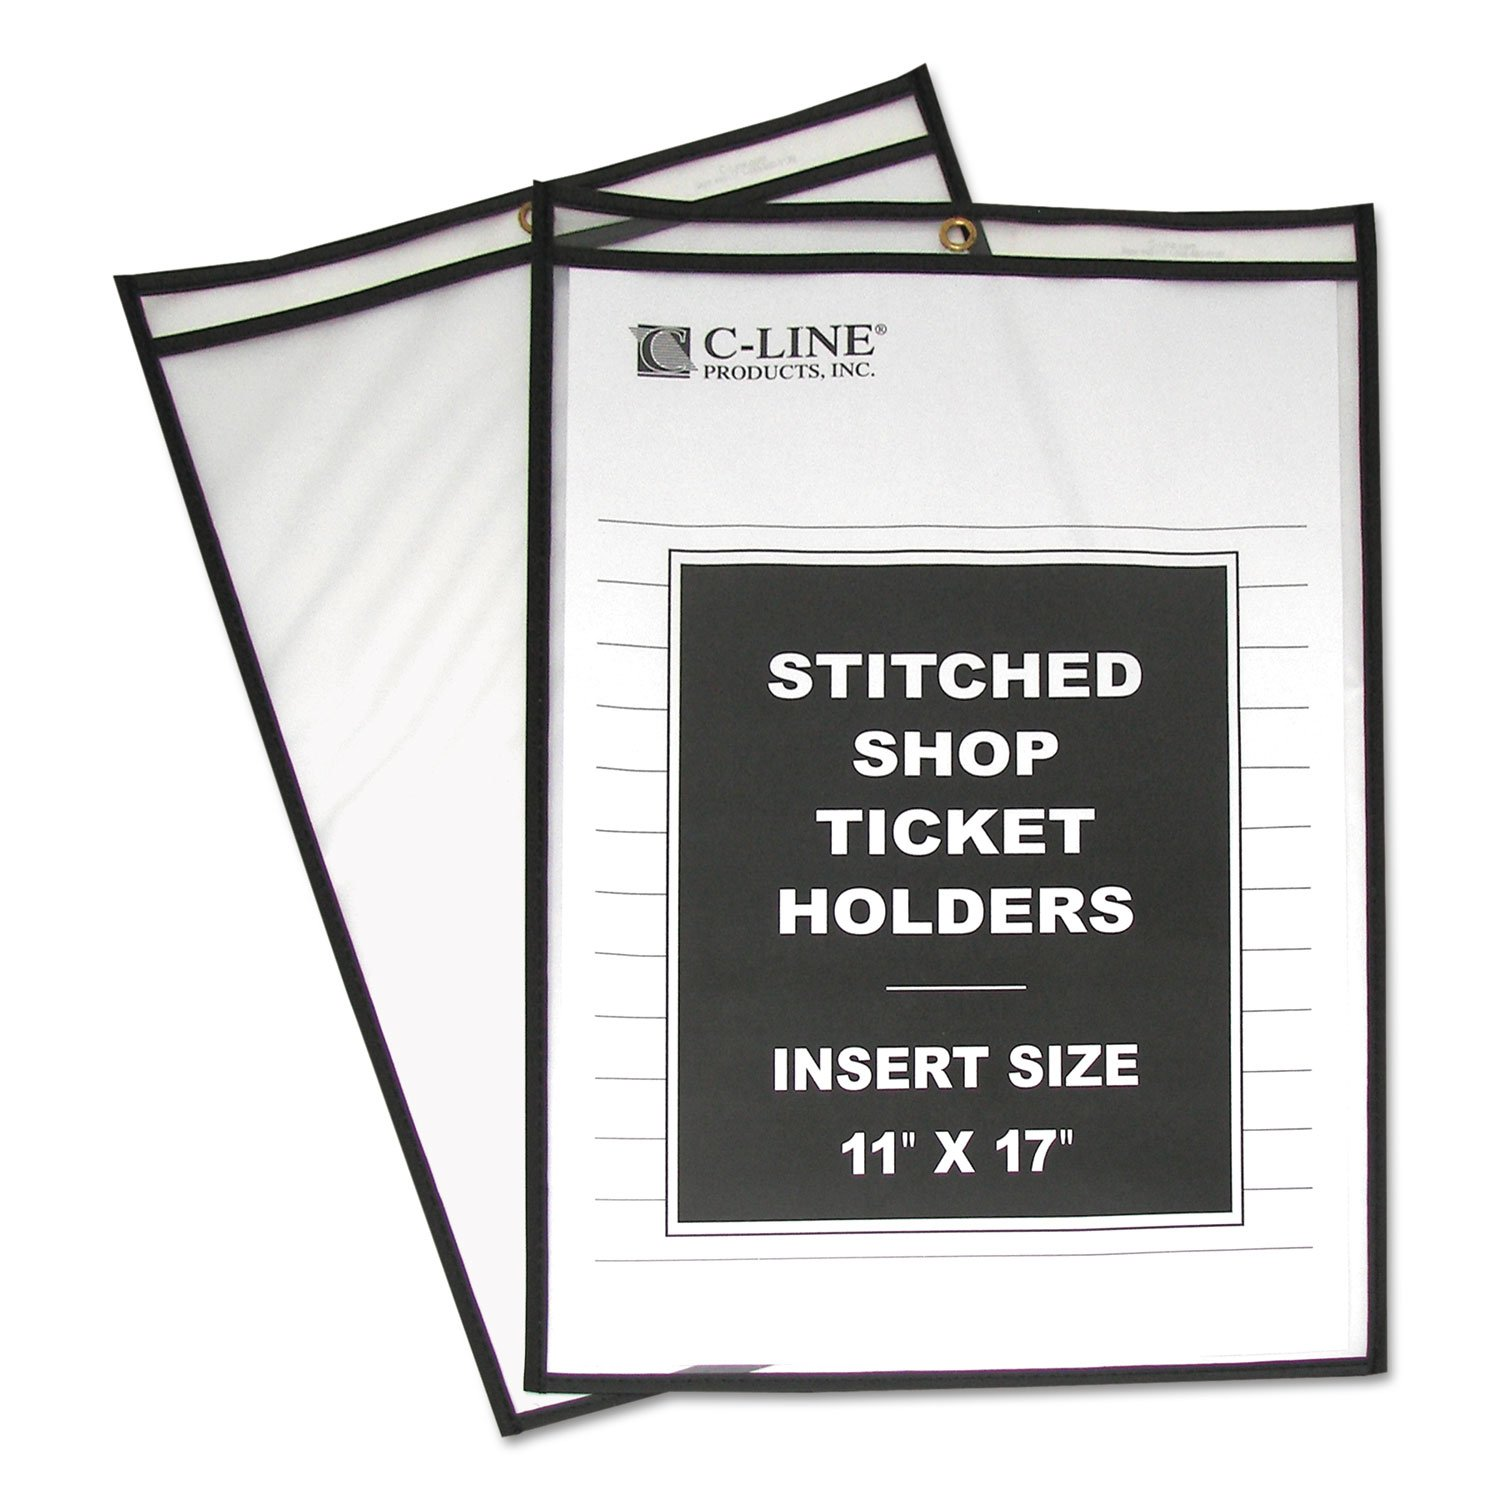 Shop Ticket Holders, Stitched, Both Sides Clear, 75, 11 X 17, 25/bx 75 C-Line